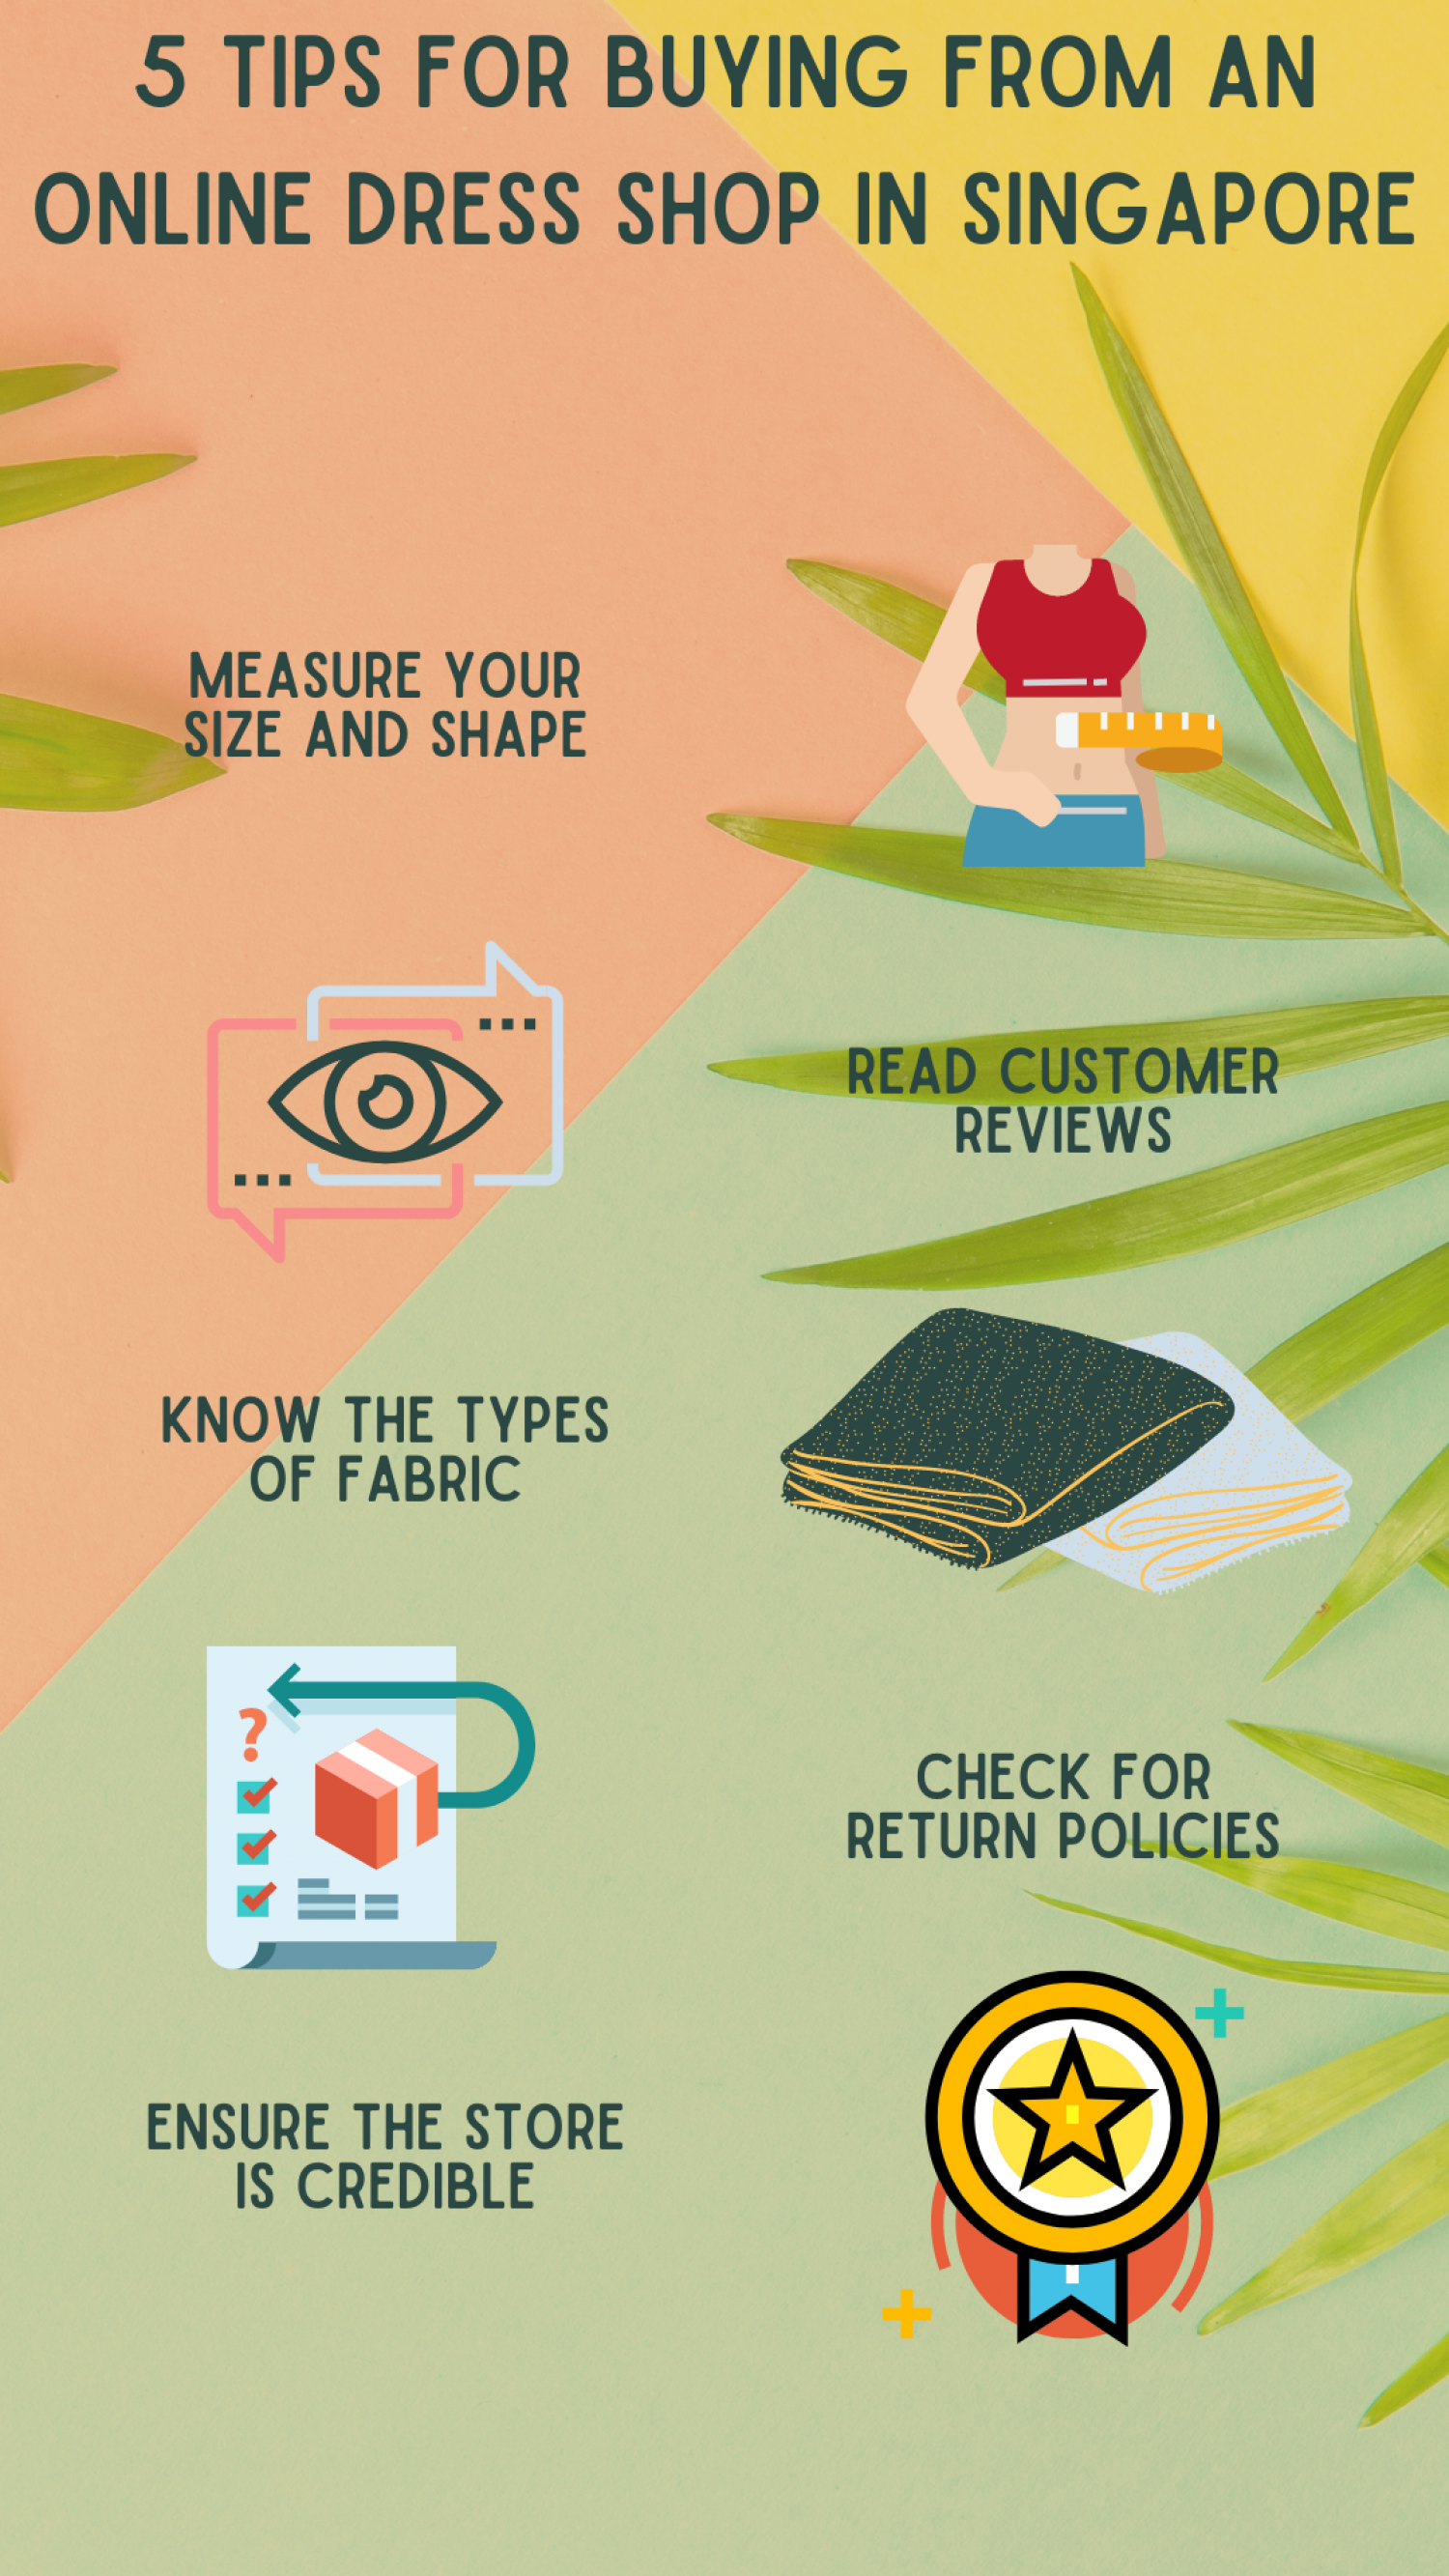 5 Tips For Buying From An Online Dress Shop In Singapore Infographic